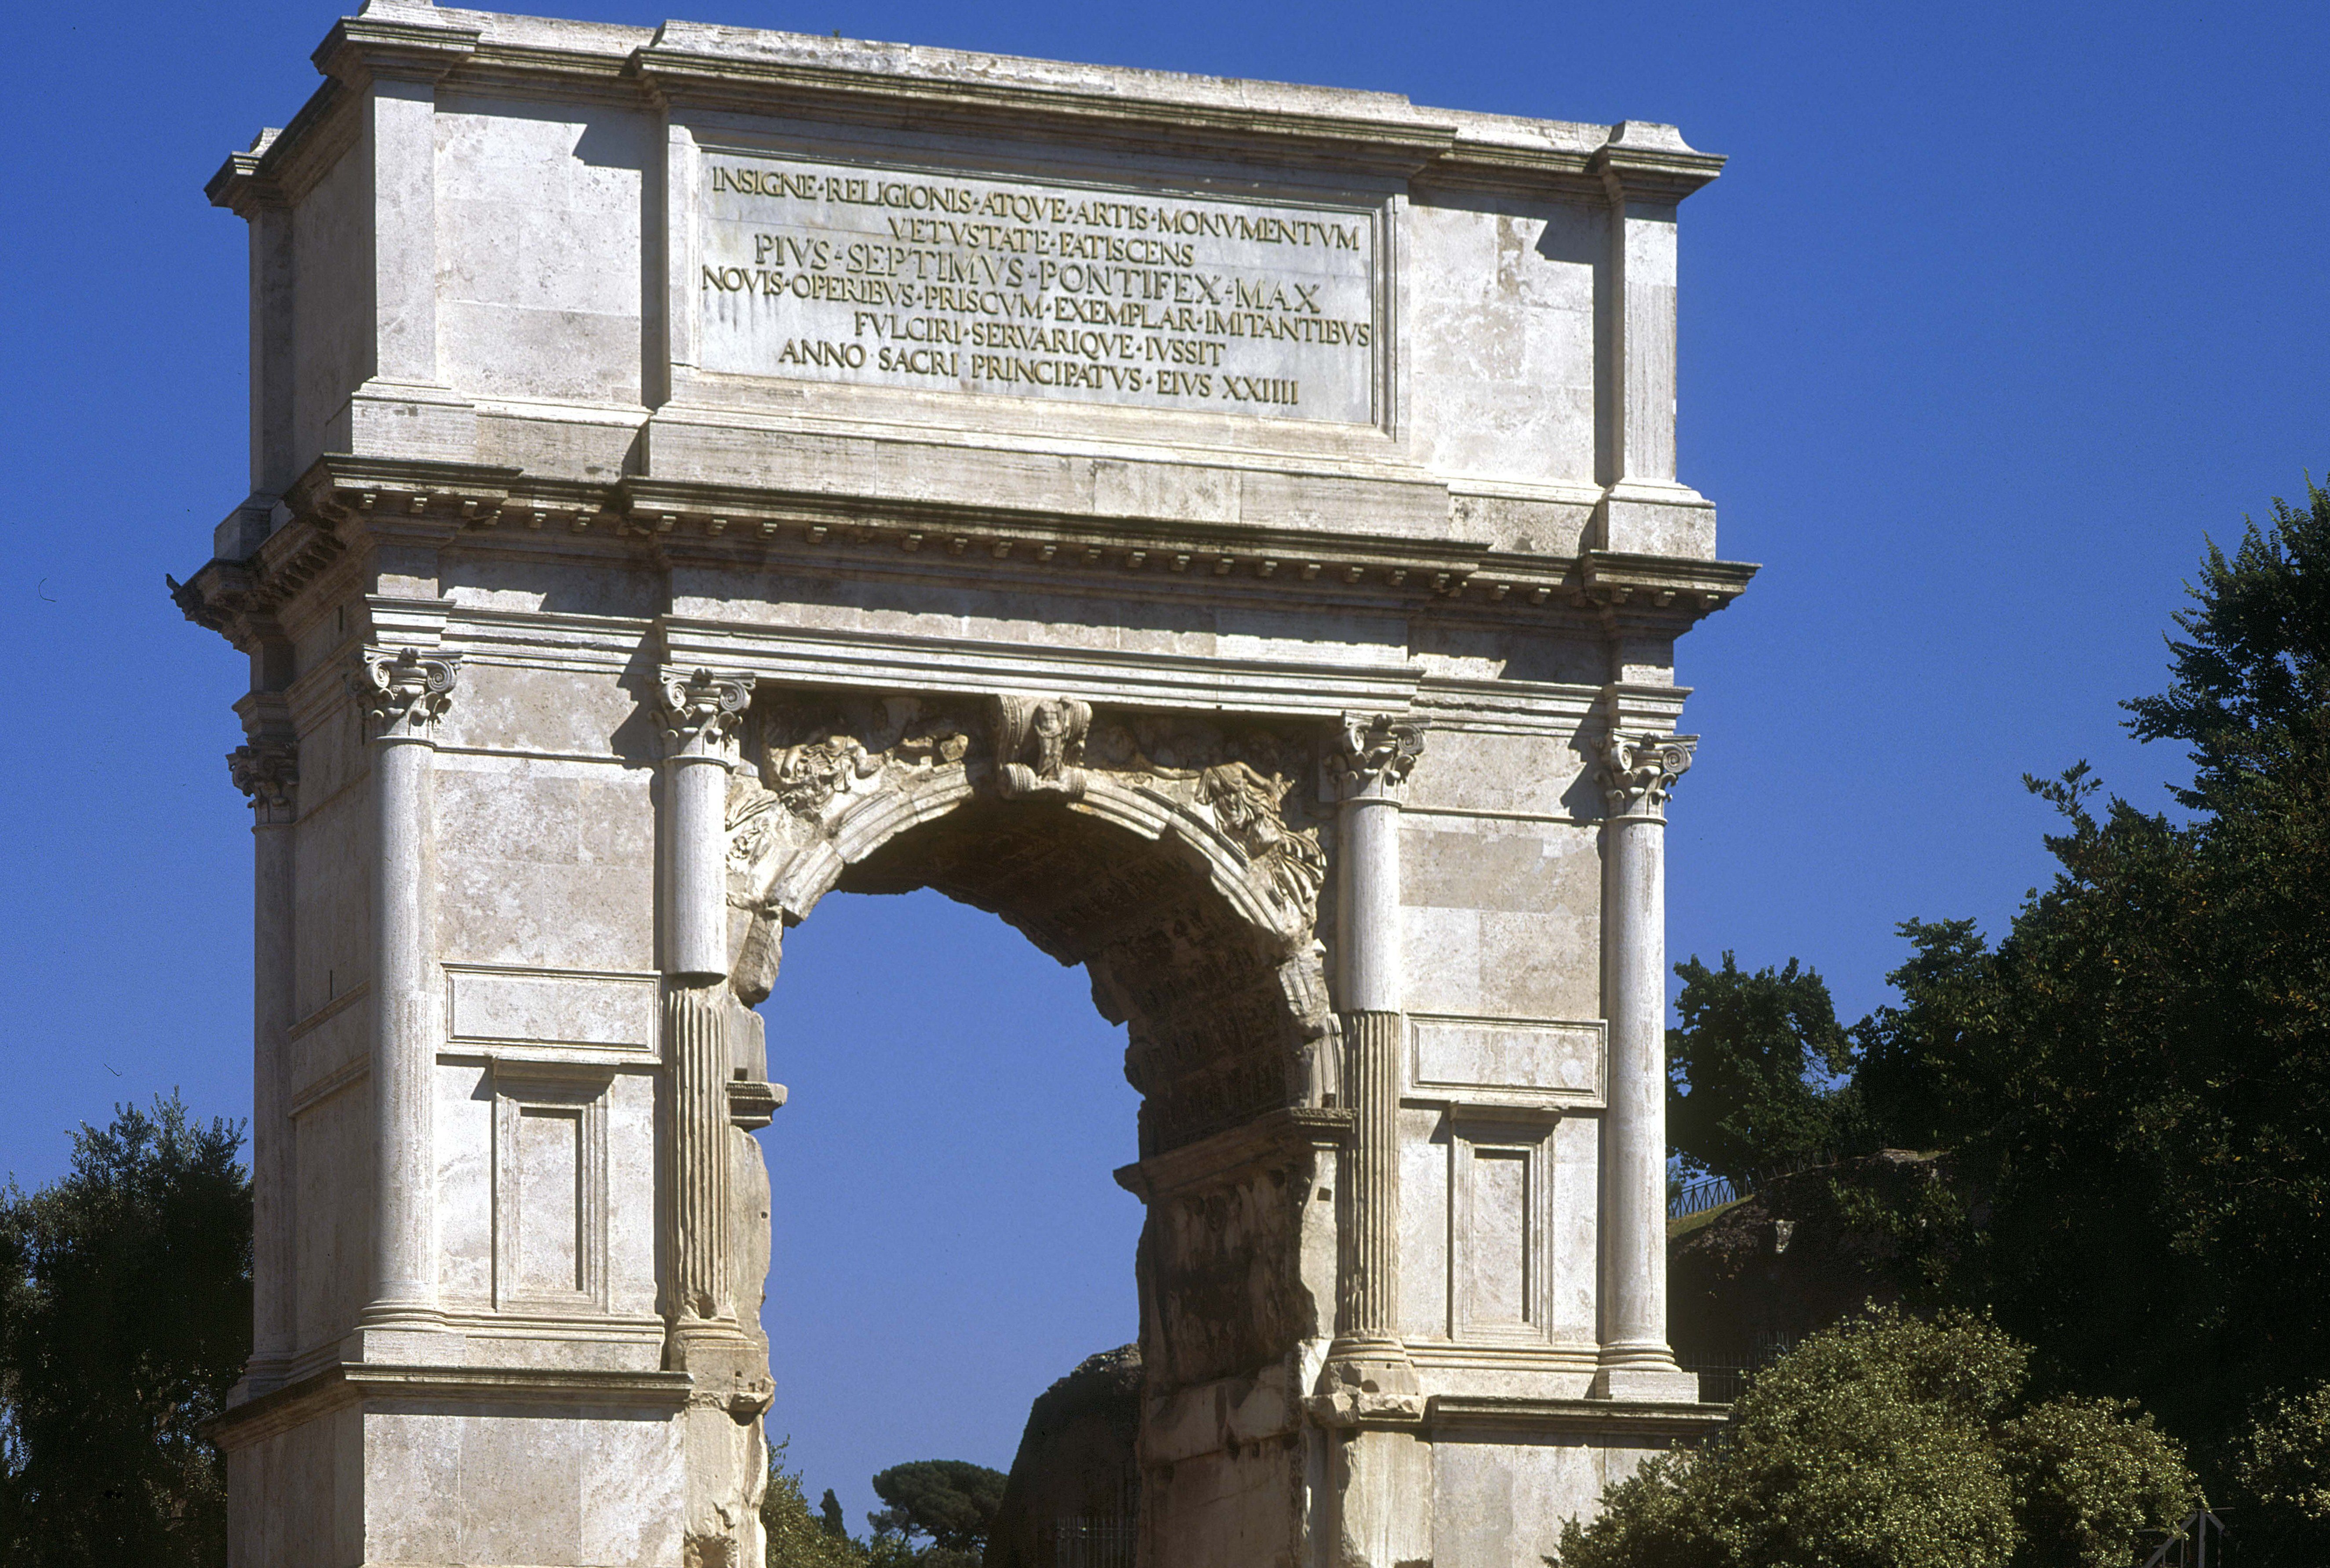 ancient Roman stone arch with engaged columns and inscription at the top